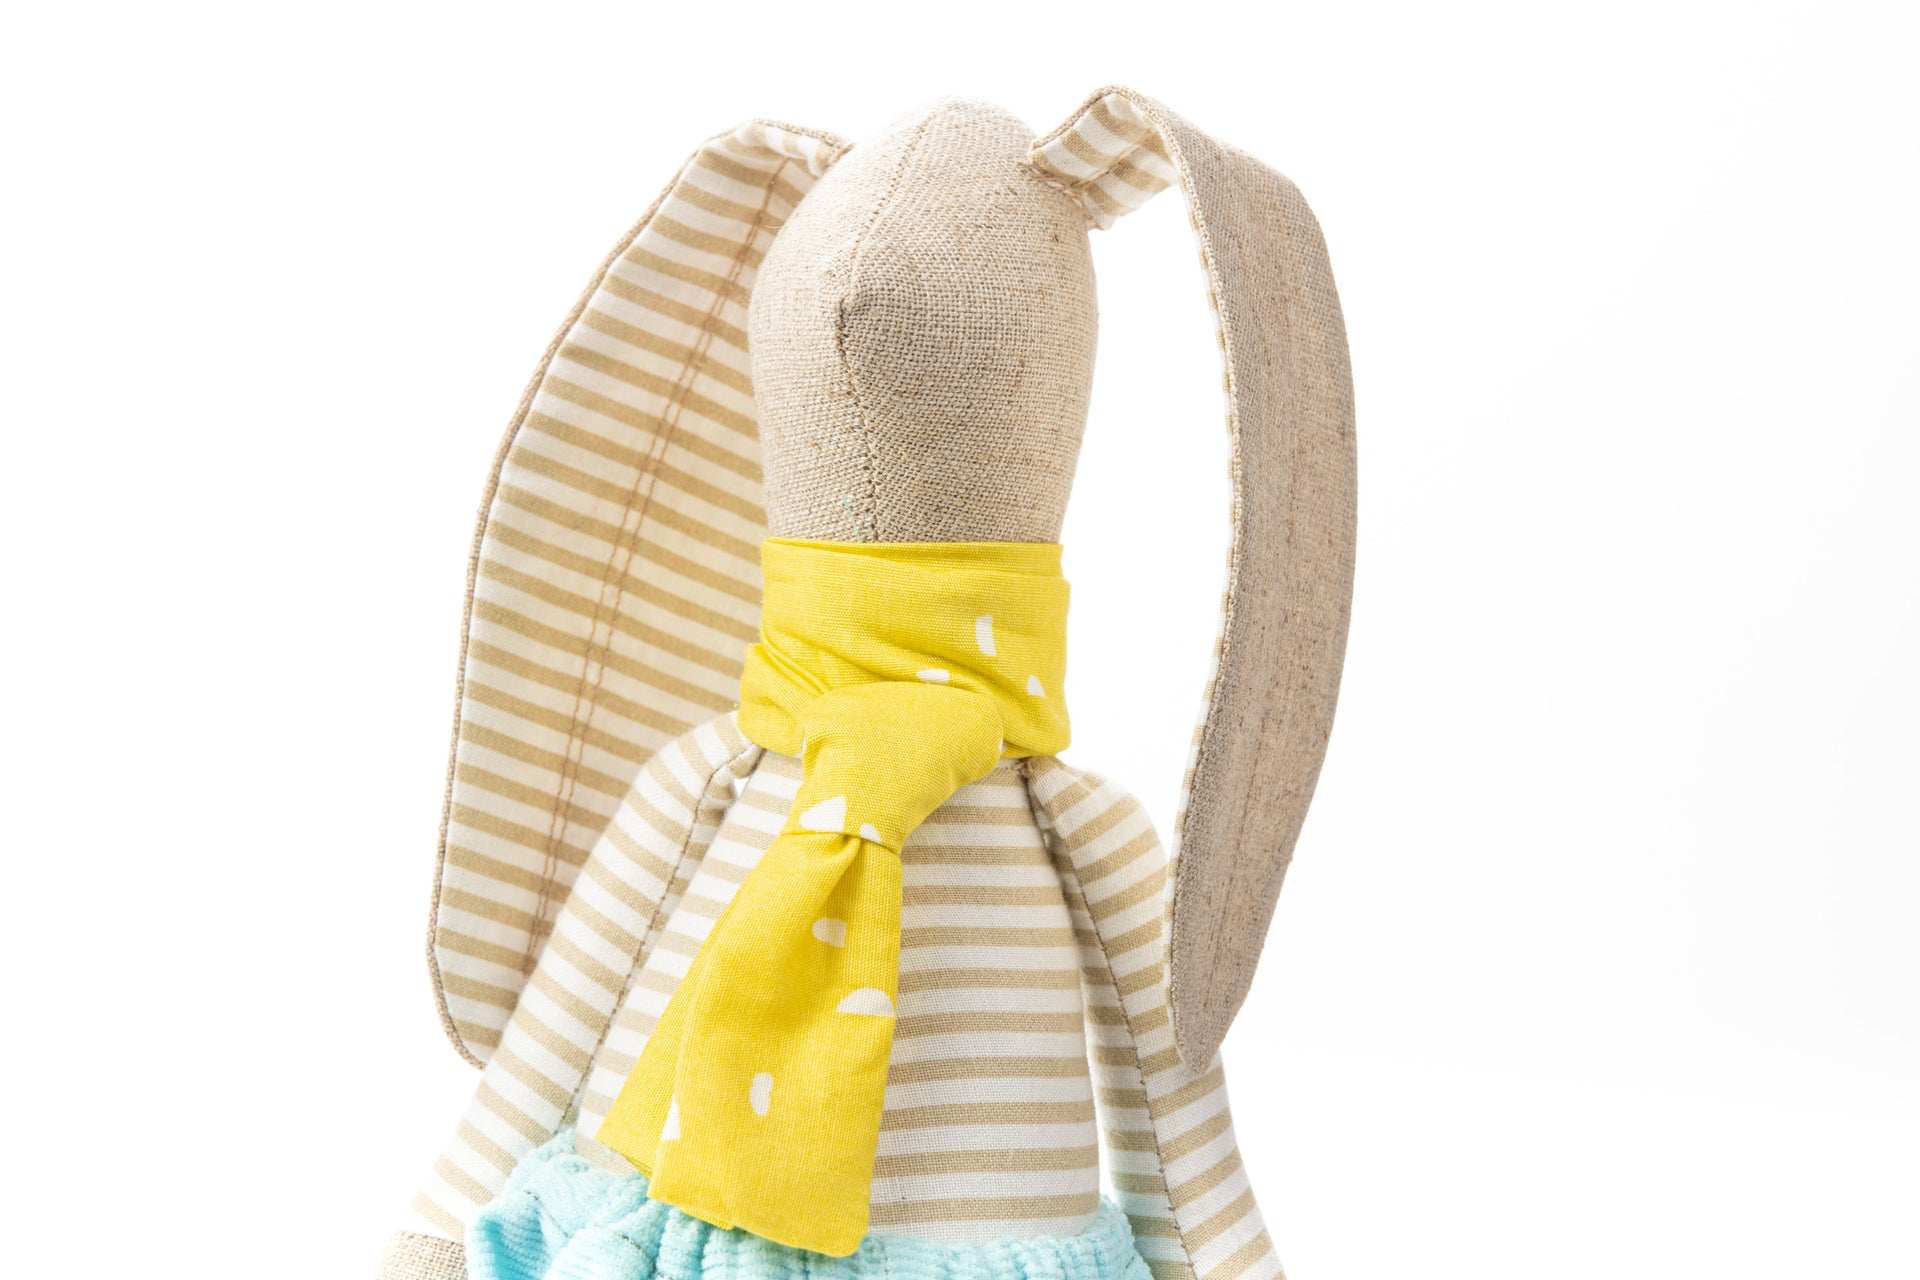 Stuffed animal, Handmade bunny, Nursery decor, Baby shower gift, Fabric dolls, Handmade decor doll, Rabbit doll, Set of 2, Twins gift, Hare